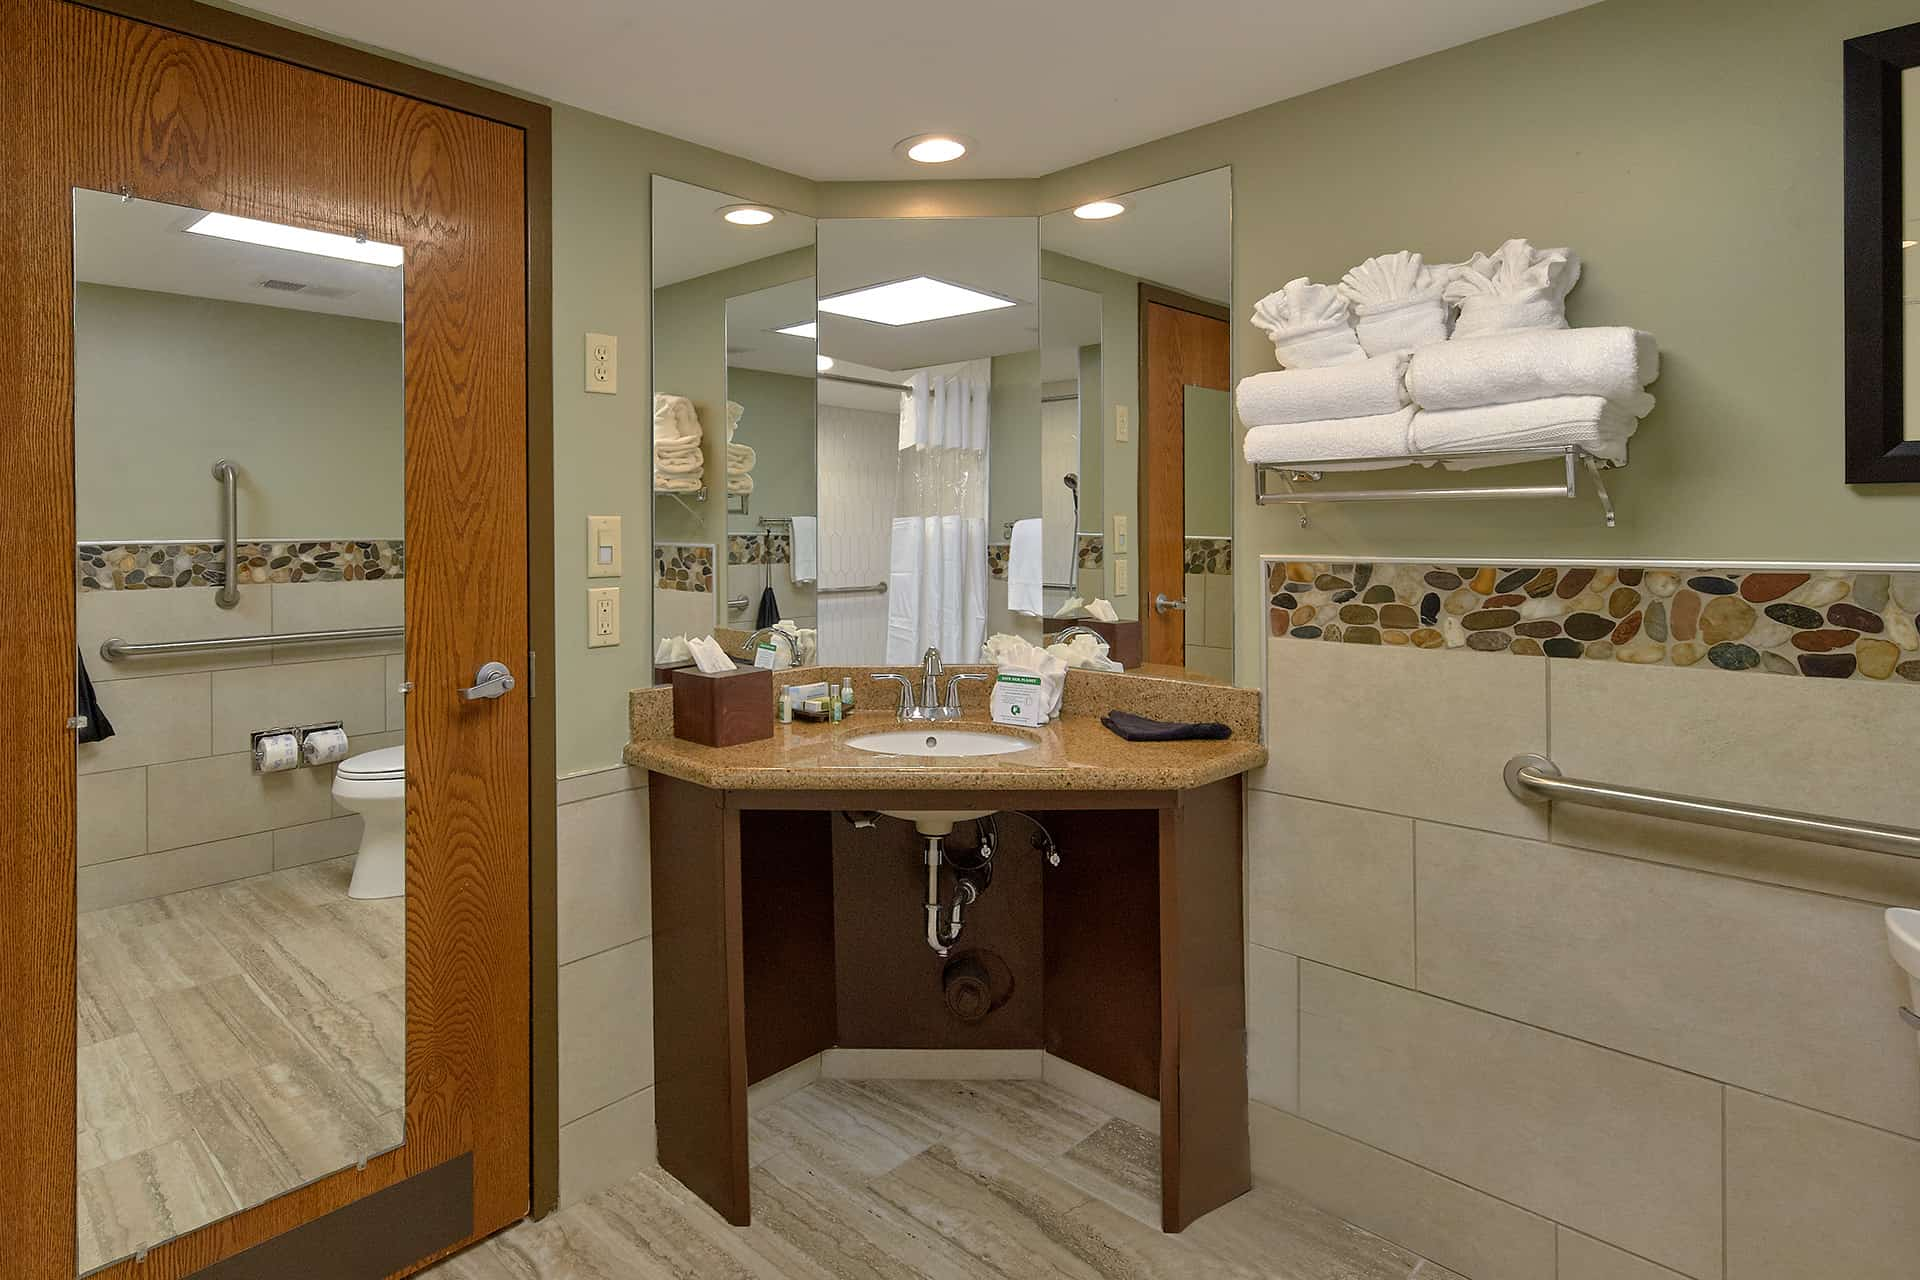 sink and mirrors in bathroom